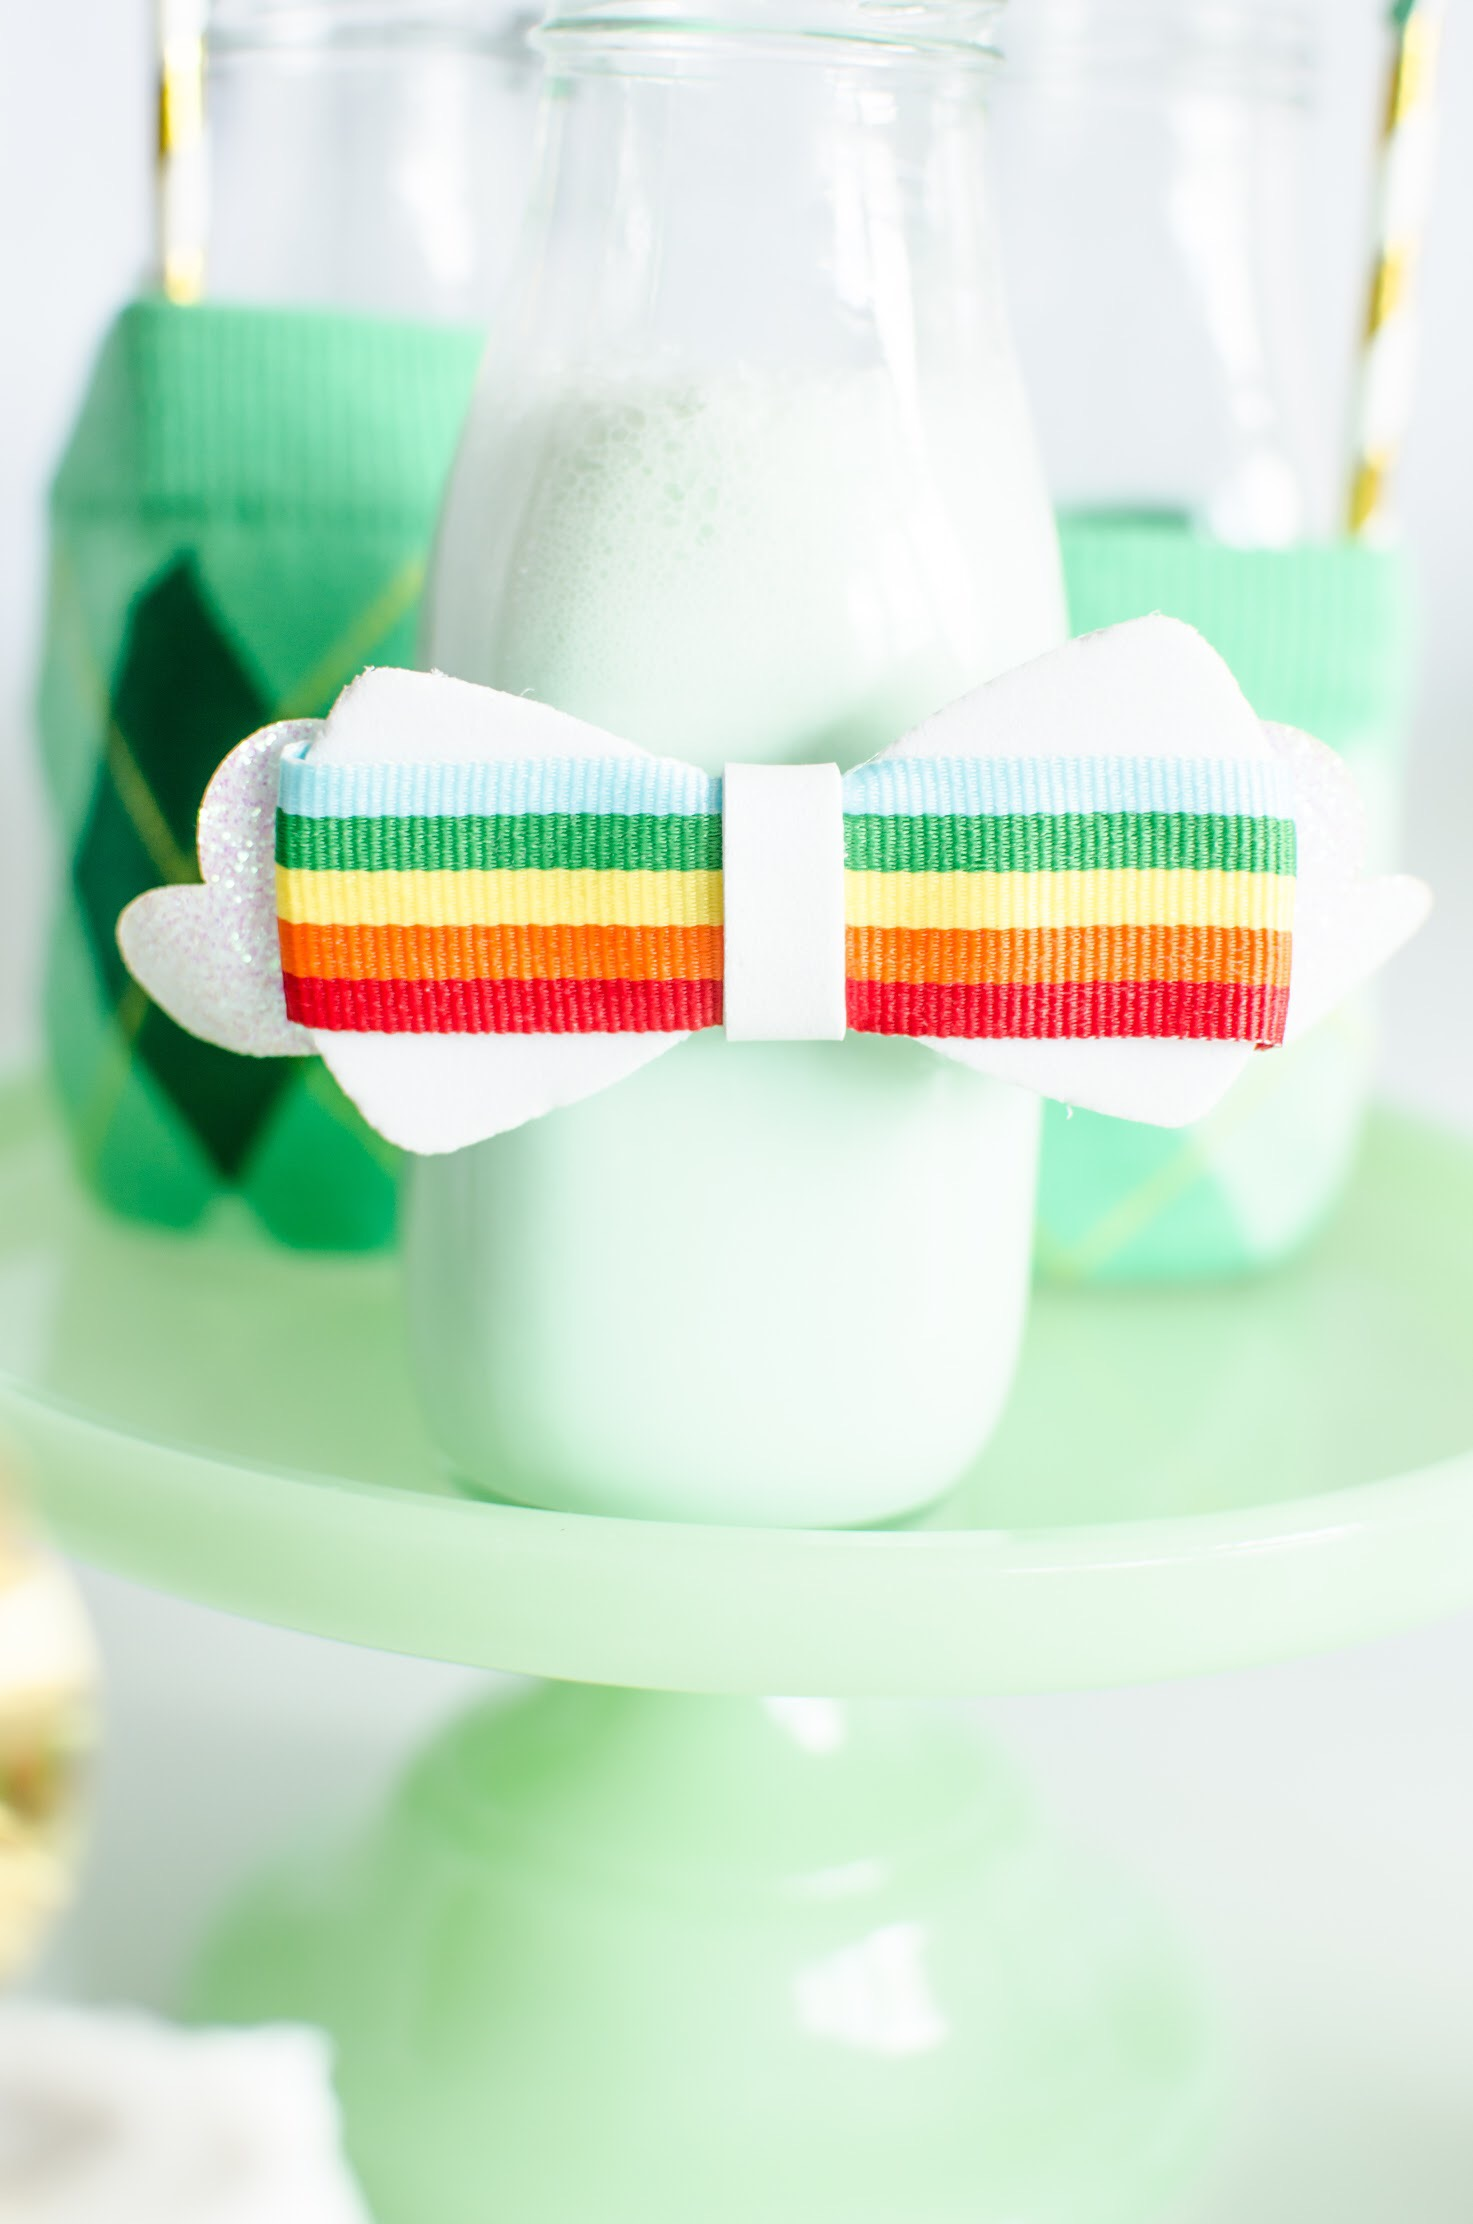 Super cute milk bottle craft for kids - find out how to re-purpose this hair bow for a Saint Patricks Day Party - see the complete diy on Mint Event Design www.minteventdesign.com #partyideas #partydecorations #saintpatricksday #stpatricksday #diycrafts #holidaycrafts #stpatricksdaycraft